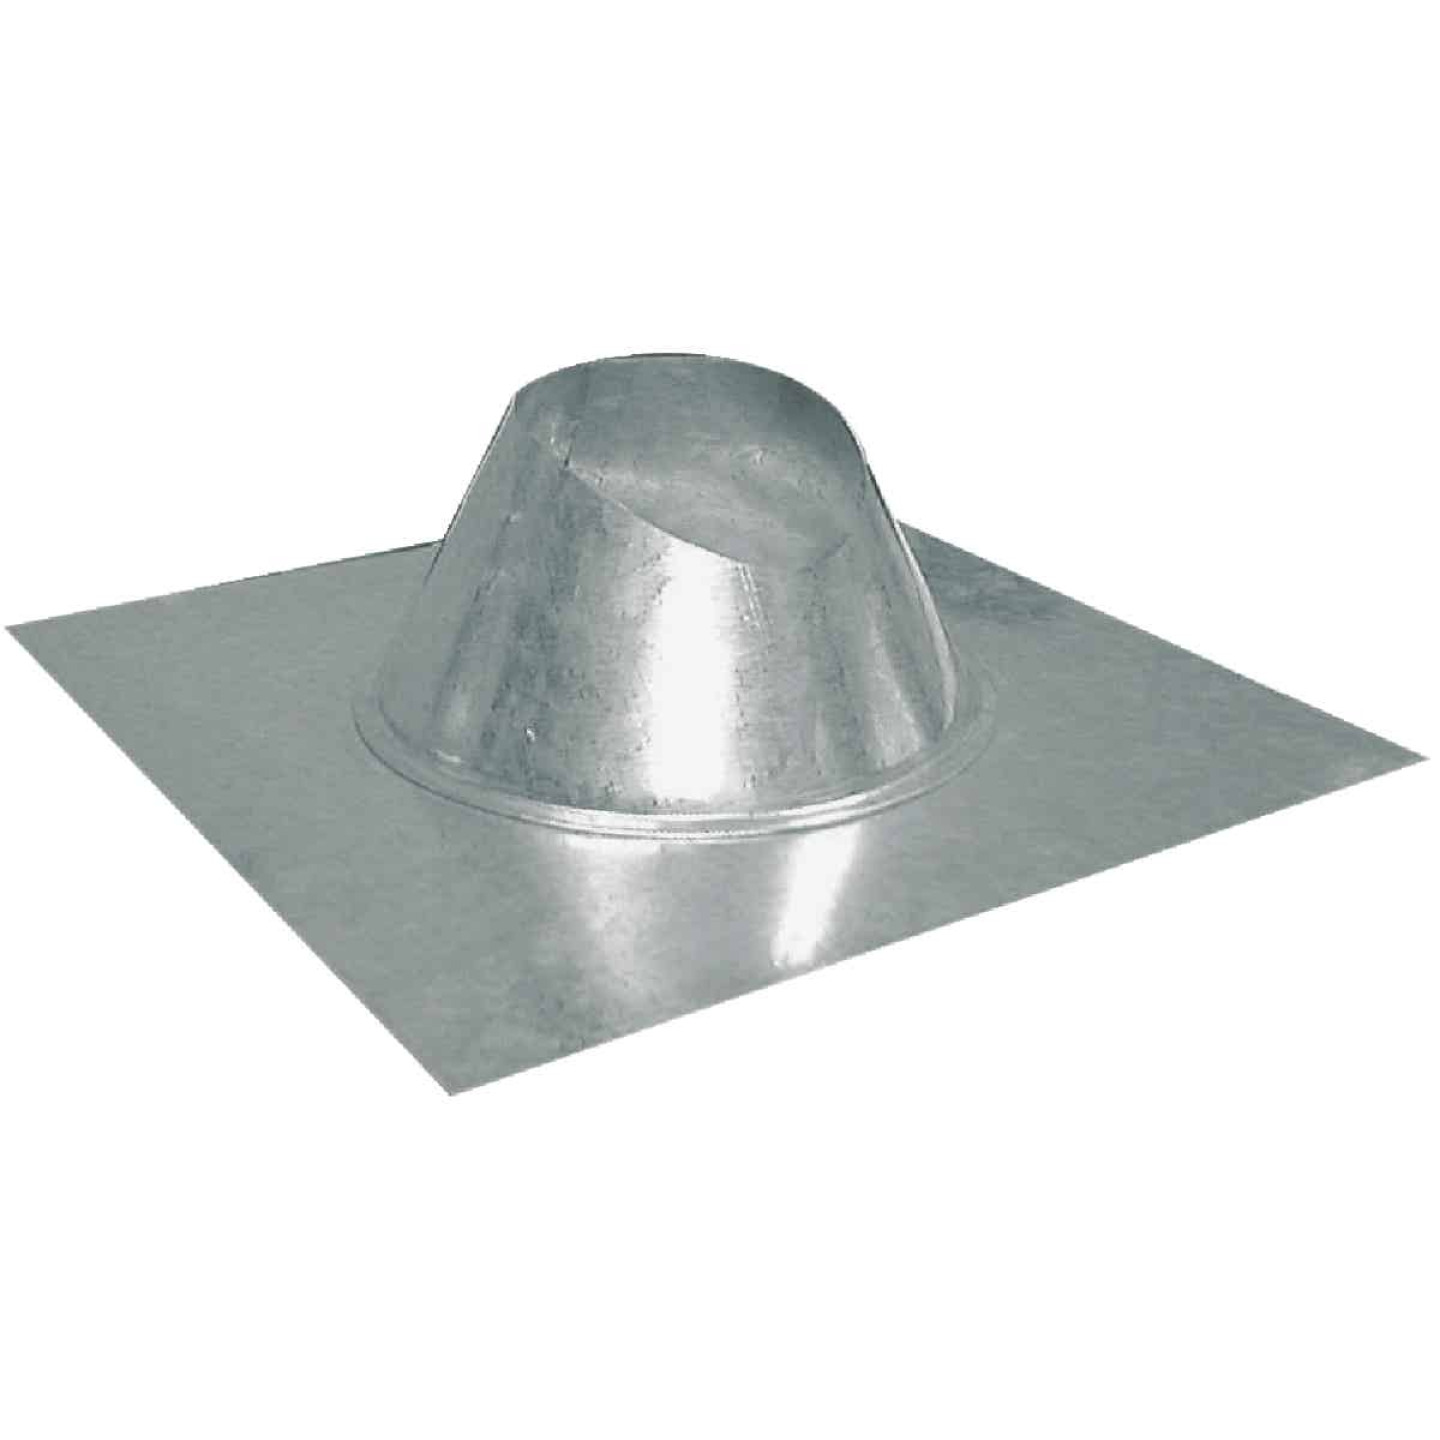 Imperial 5 In. Galvanized Rainproof Roof Pipe Flashing Image 1